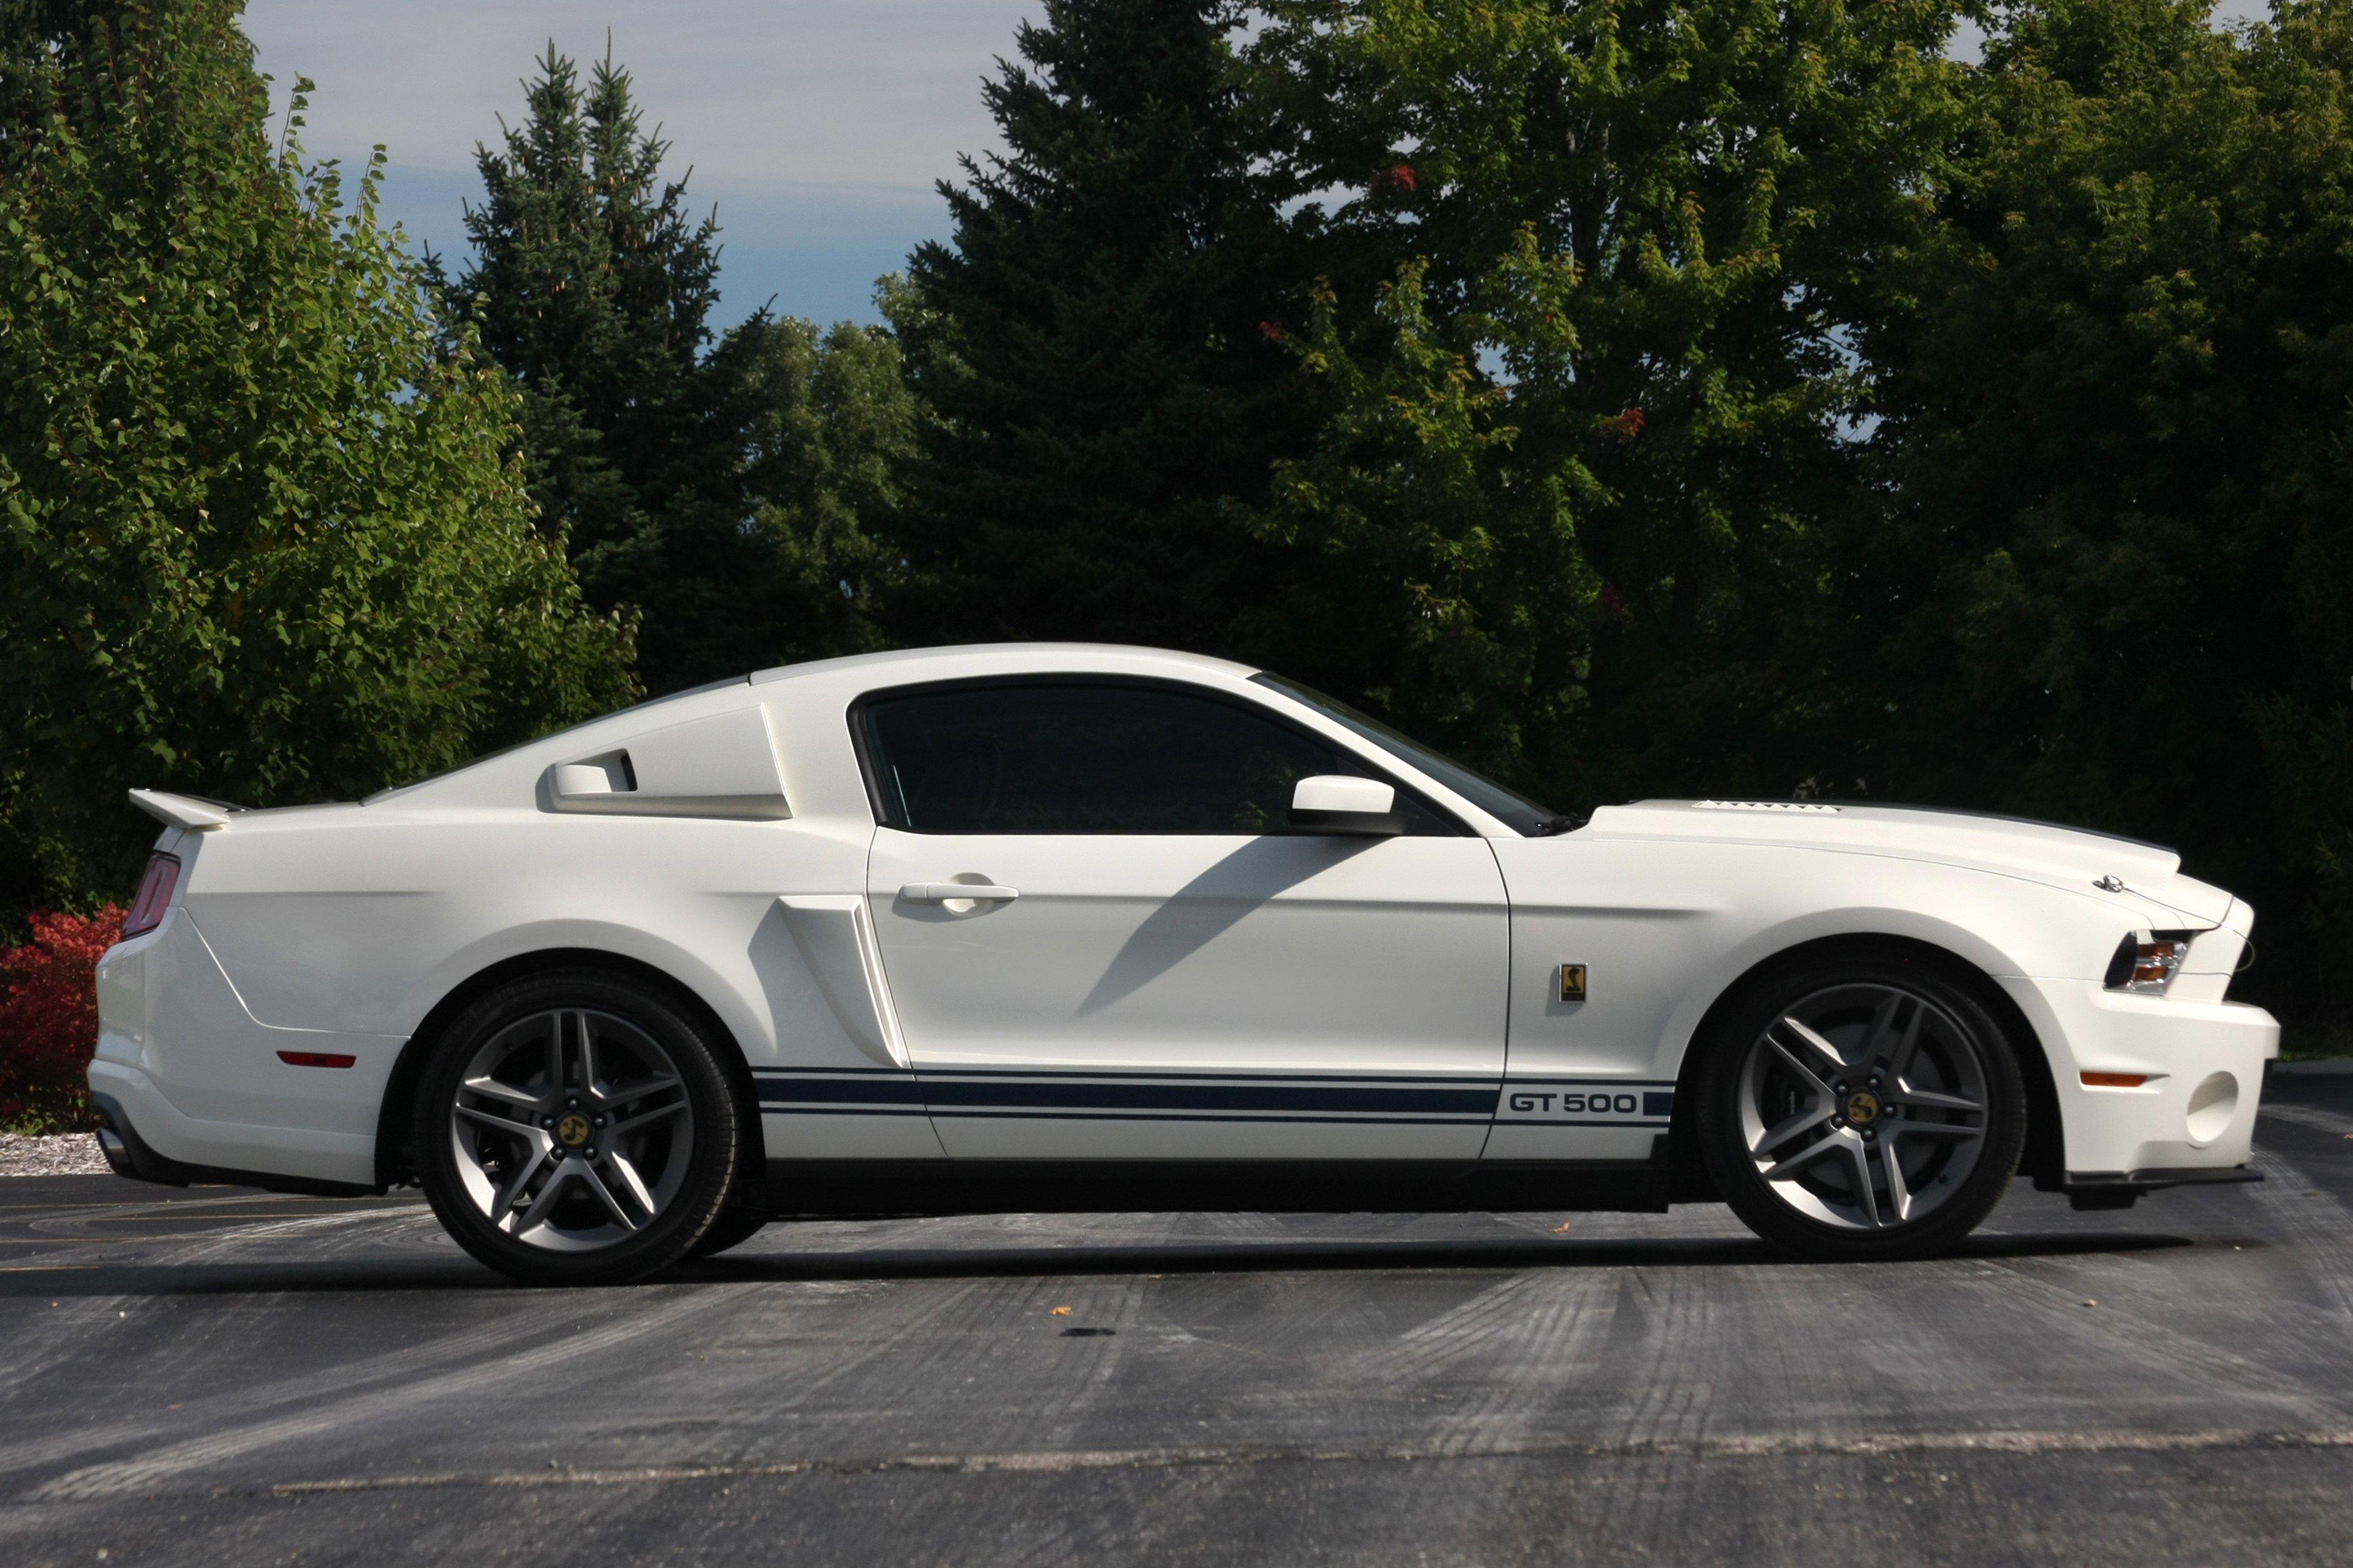 2010 ford mustang shelby gt500 patriot muscle super car white usa 4096x2730 06 wallpaper 4096x2730 662649 wallpaperup